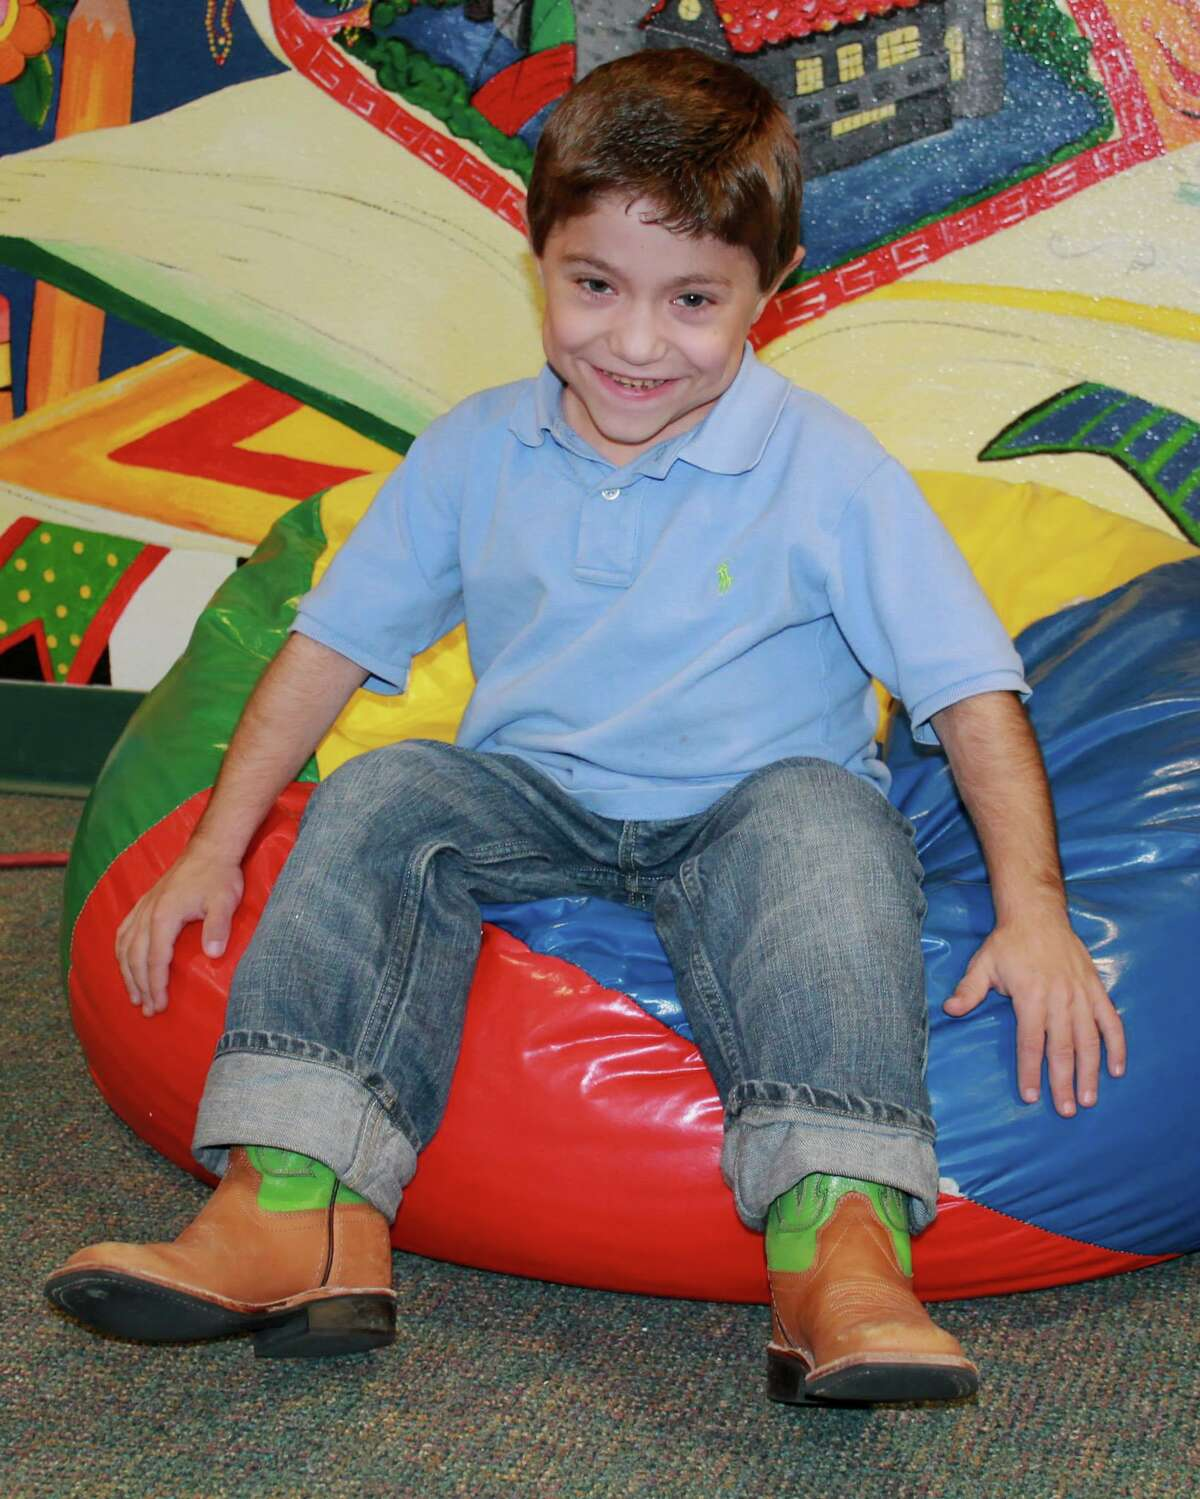 Matthew Parker, 6, will receive a kidney from his elementary school teacher. They are a perfect match for a transplant.